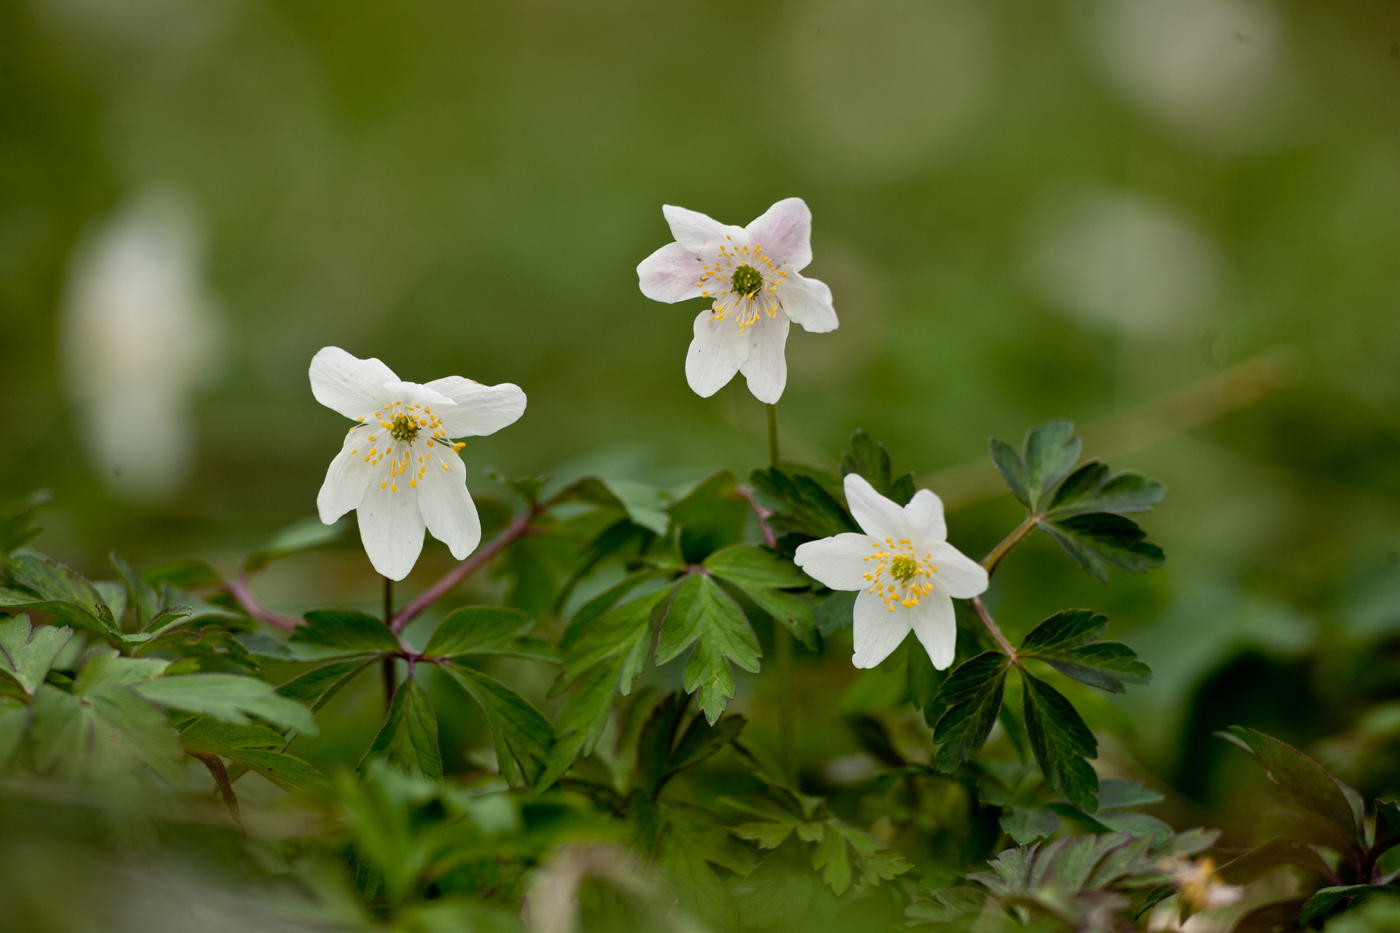 Photograph of three wood anemone flowers